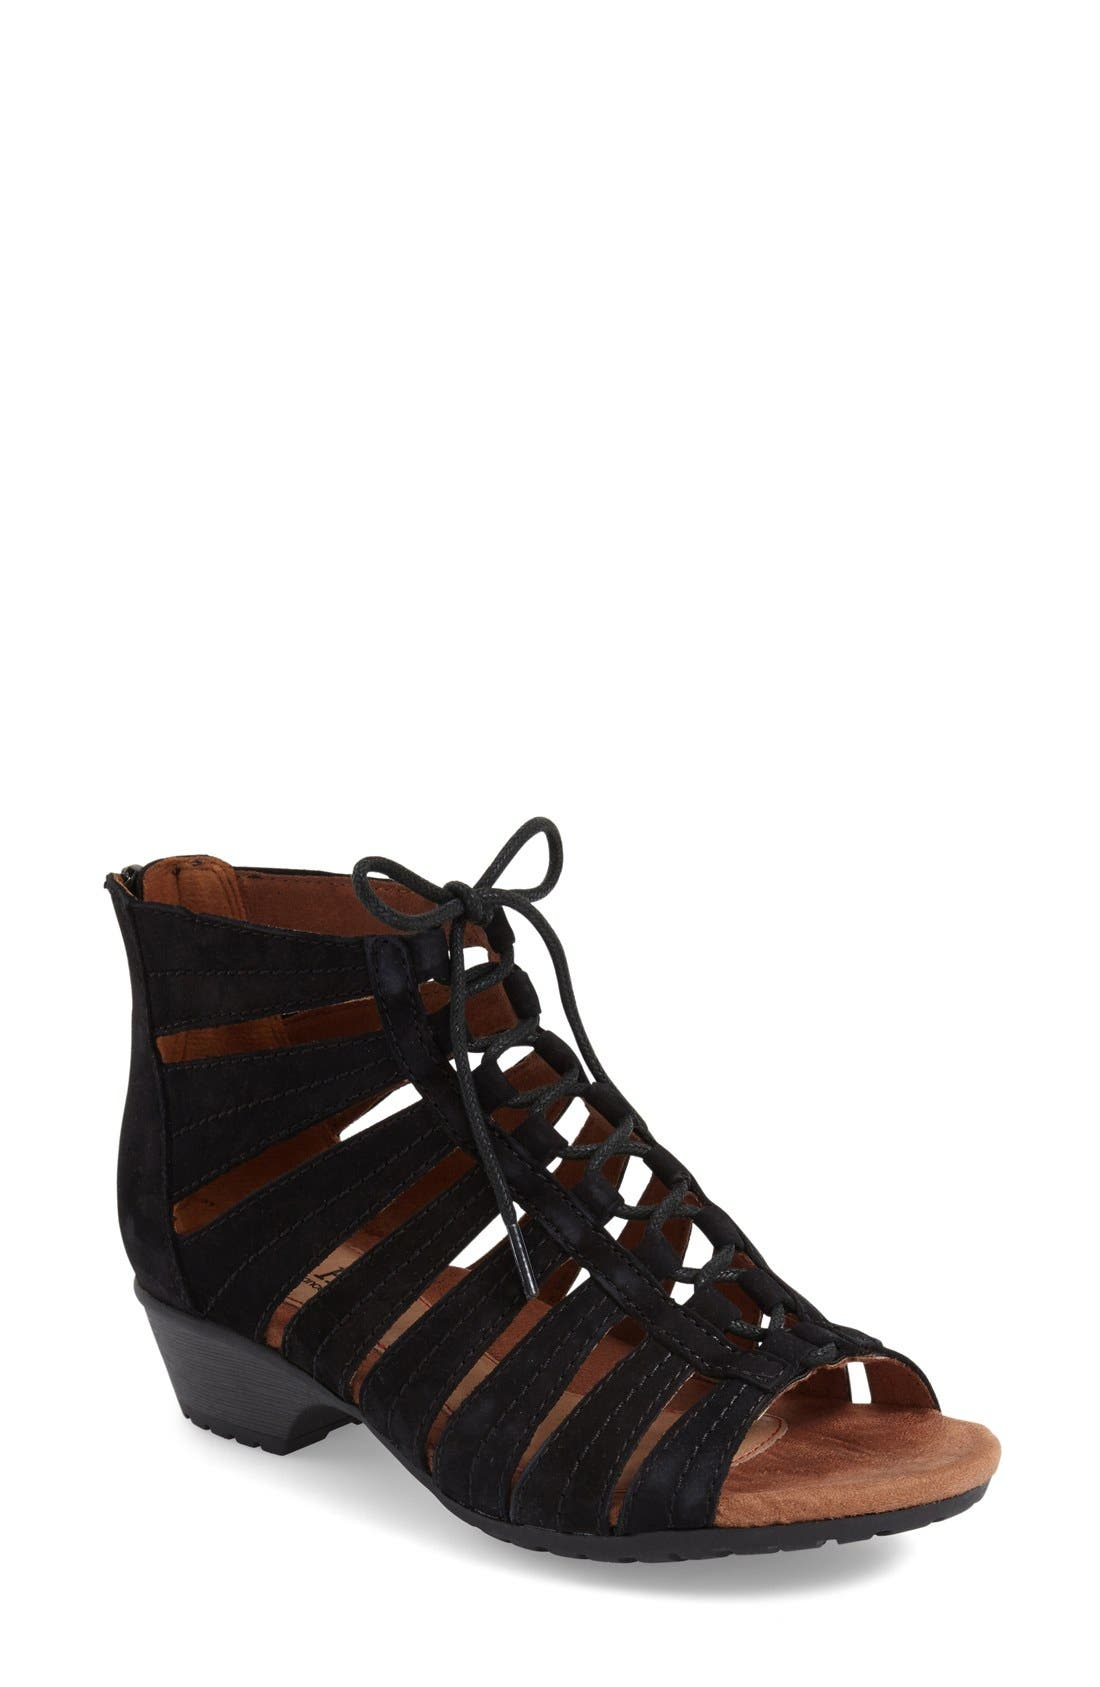 'Gabby' Lace-Up Sandal,                             Main thumbnail 3, color,